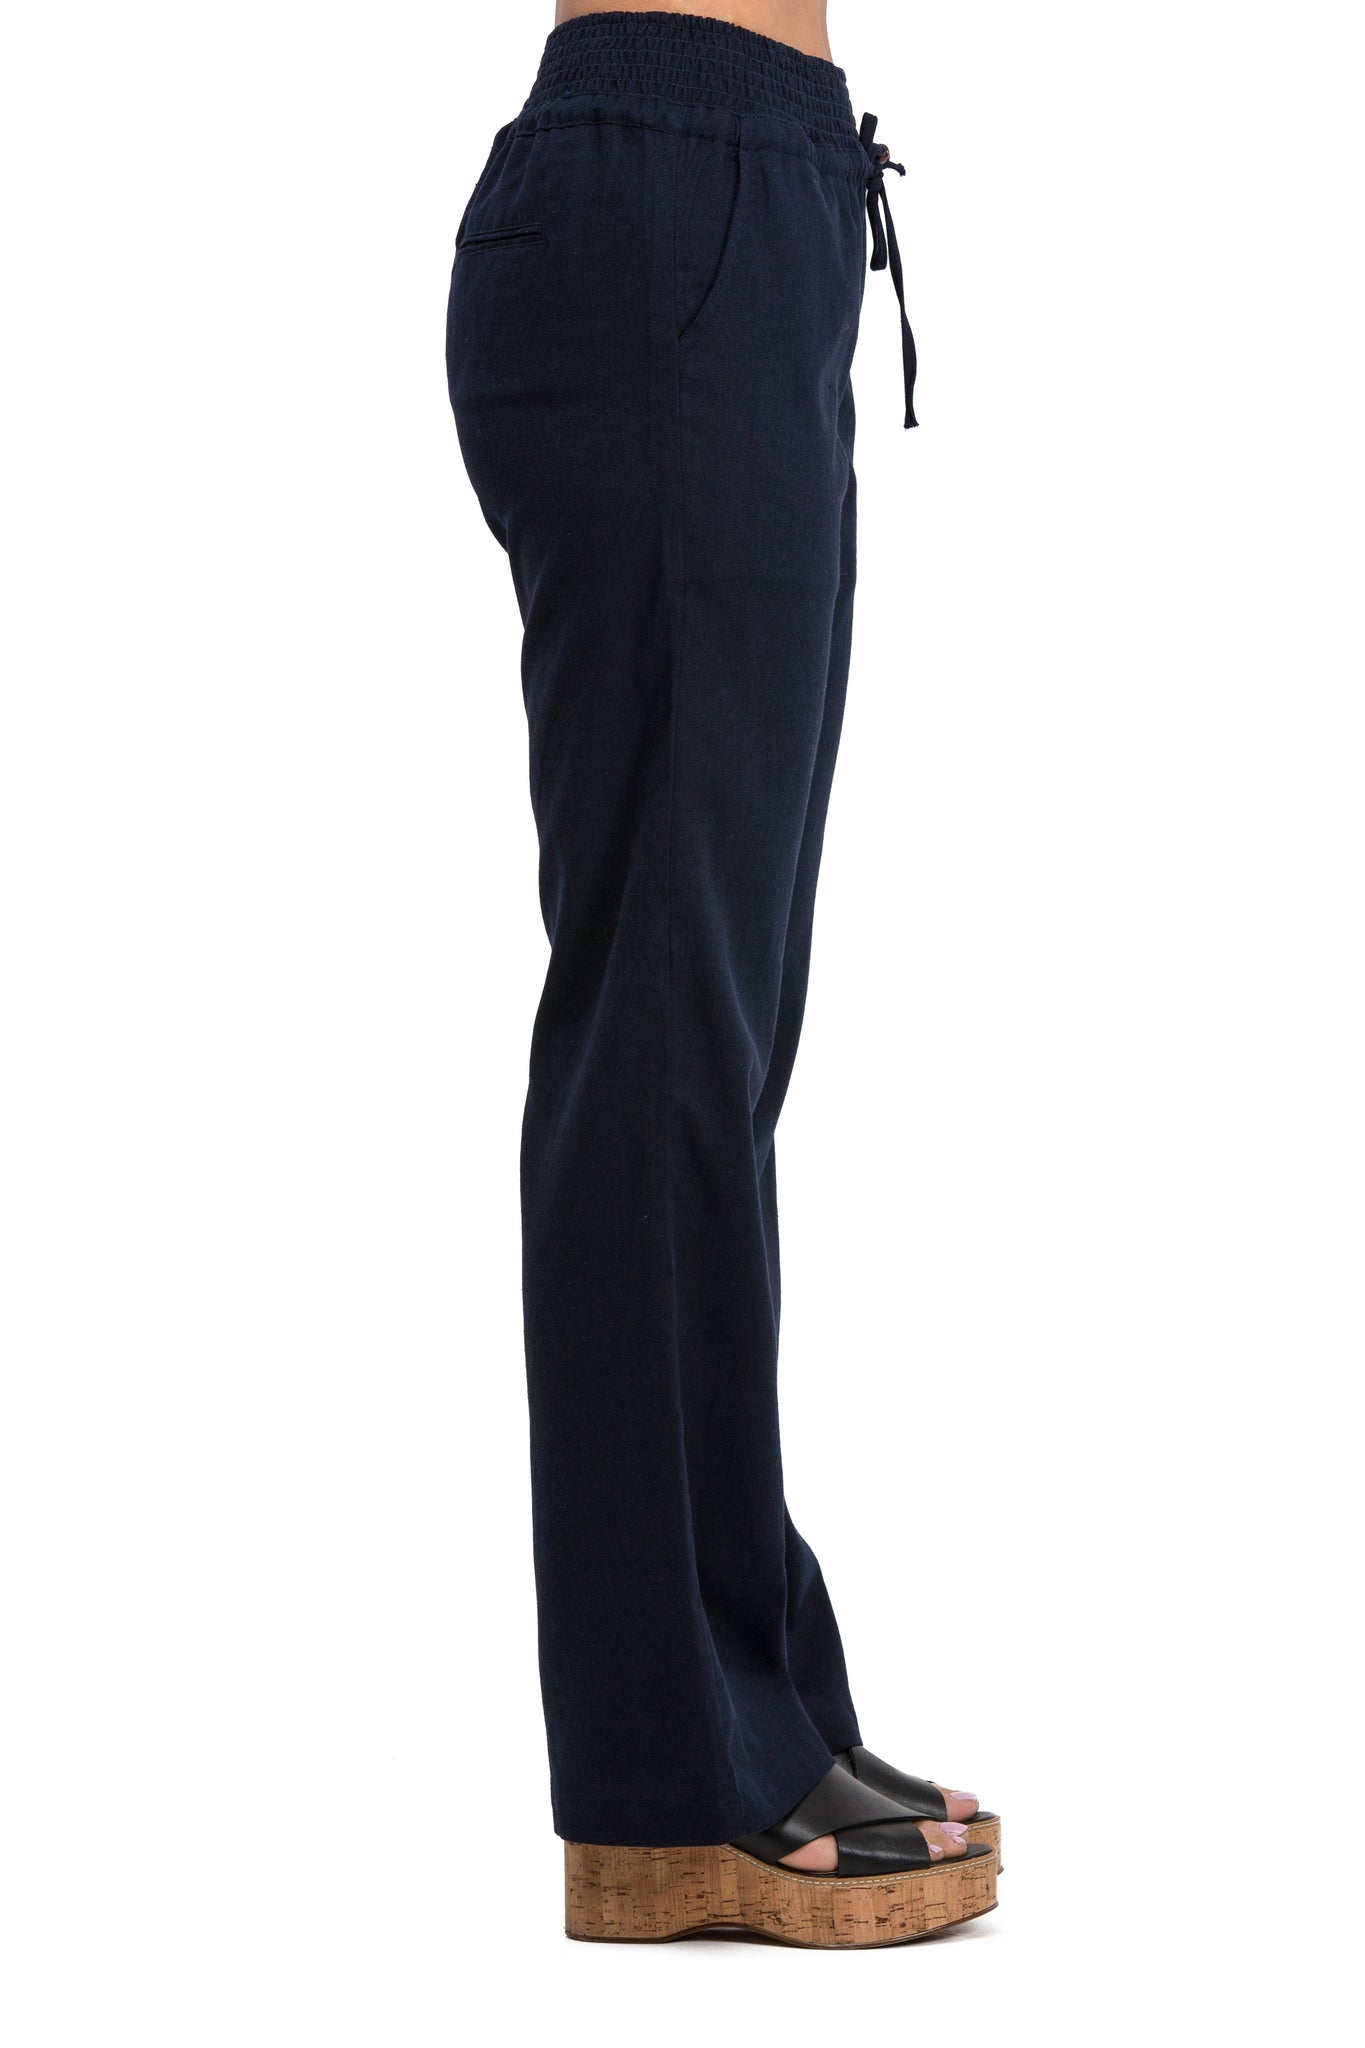 Comfy Drawstring Linen Pants Long with Smocked Band Waist (Navy) - Poplooks